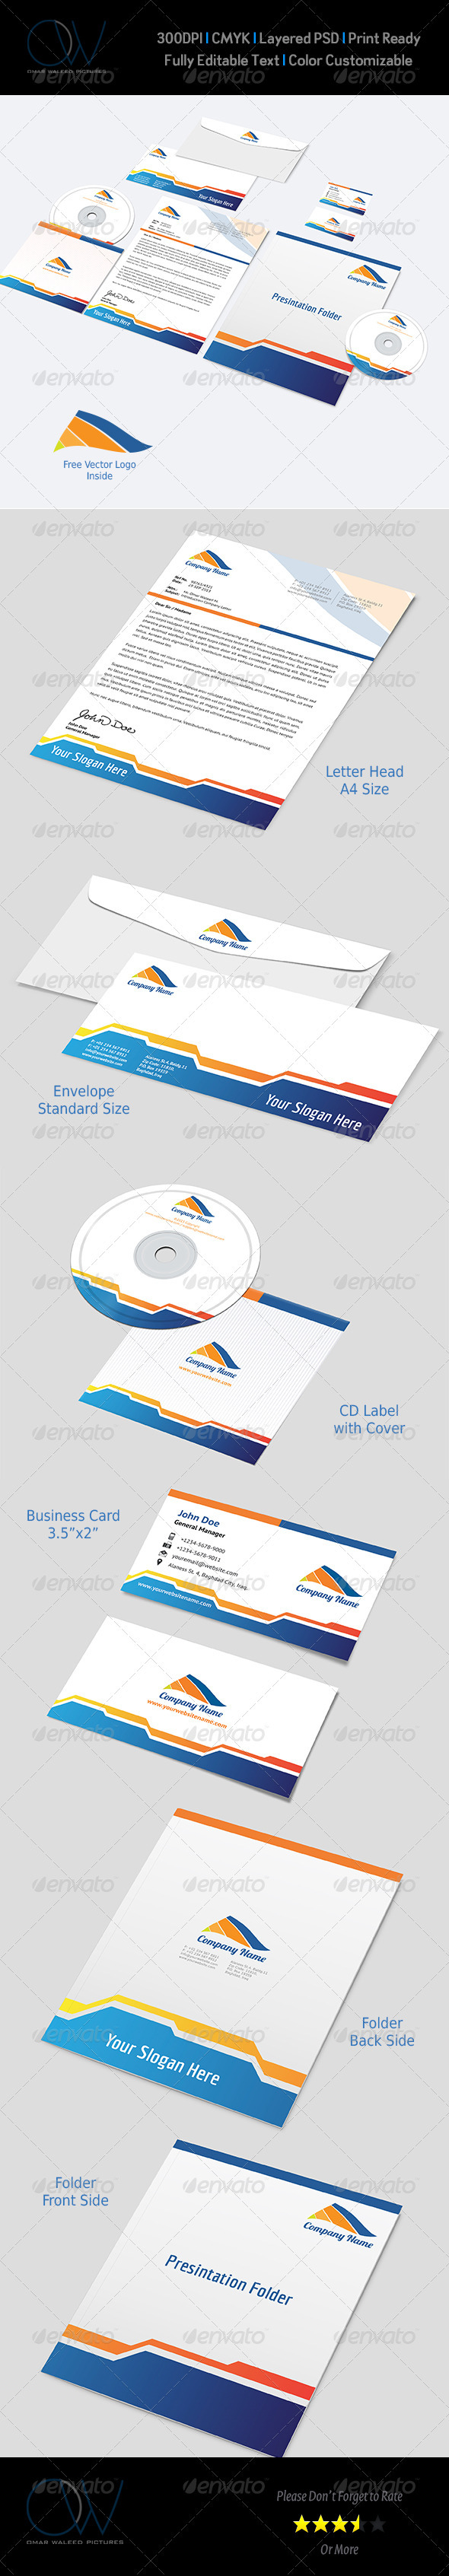 Corporate Stationery Pack Vol.4 - Stationery Print Templates